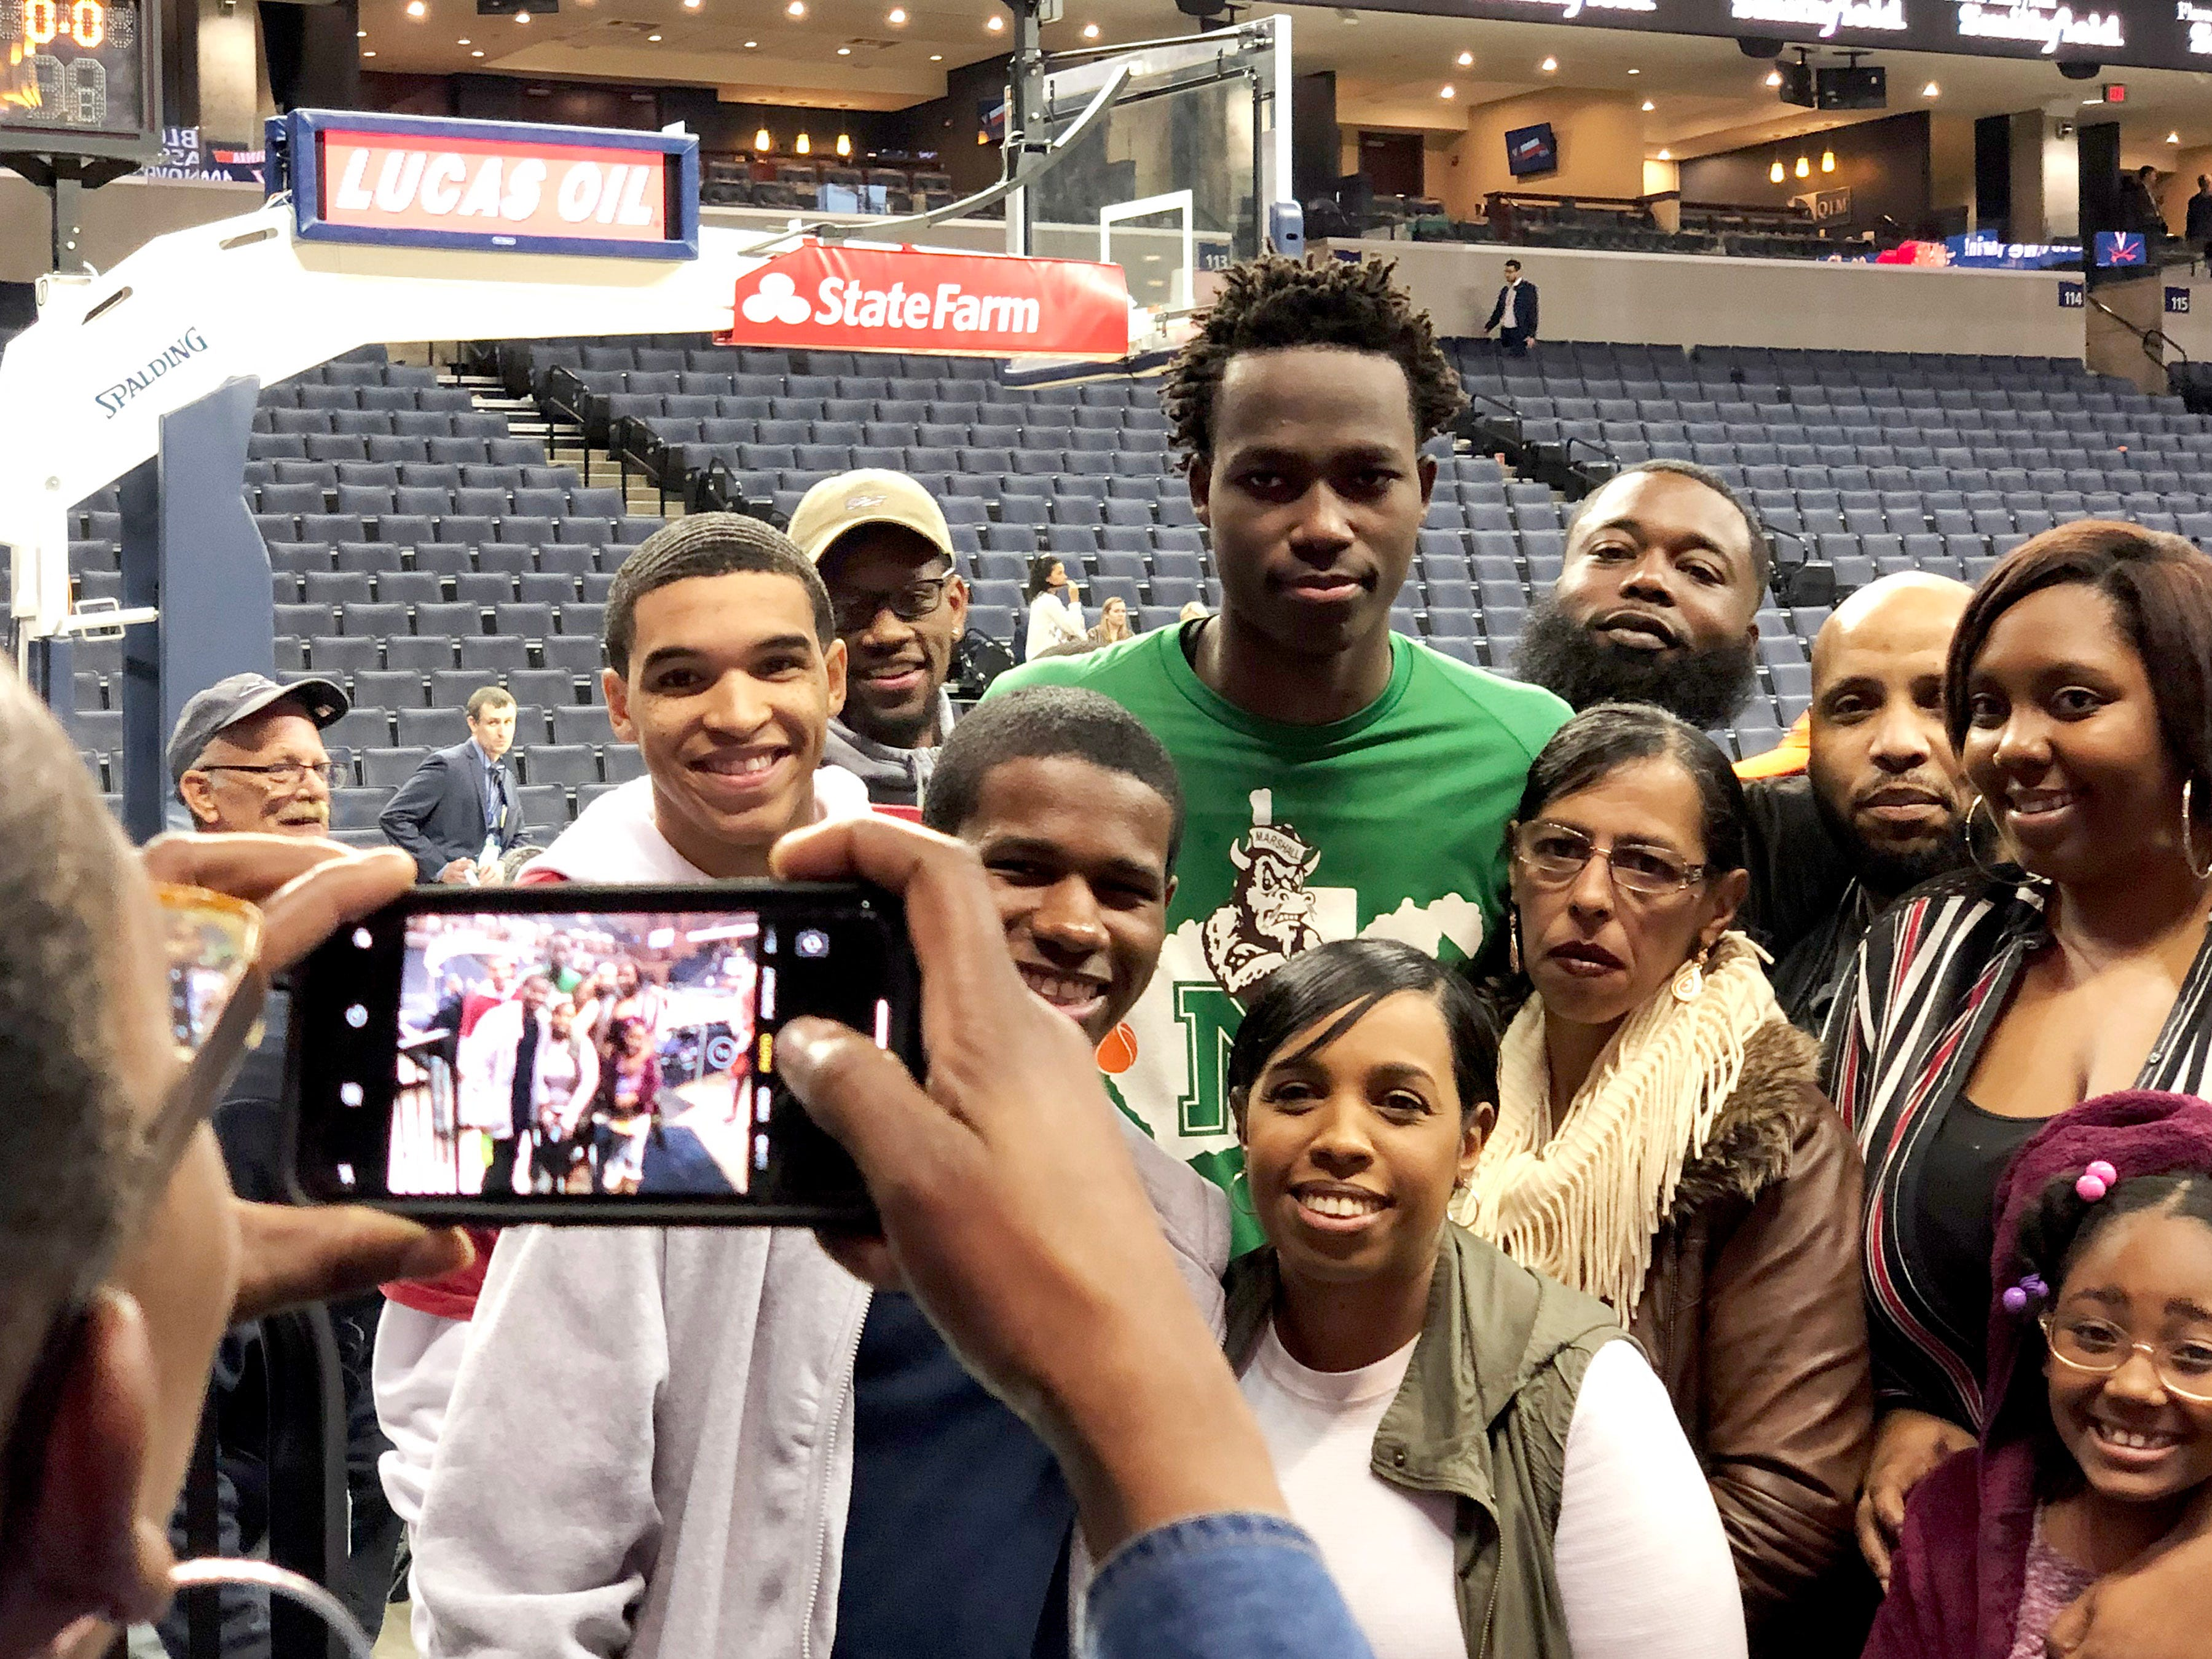 Marshall's Darius George, former R.E. Lee star, guards with family and friends after Marshall's game against the University of Virginia, played at the John Paul Jones Arena on Dec. 31, 2016.